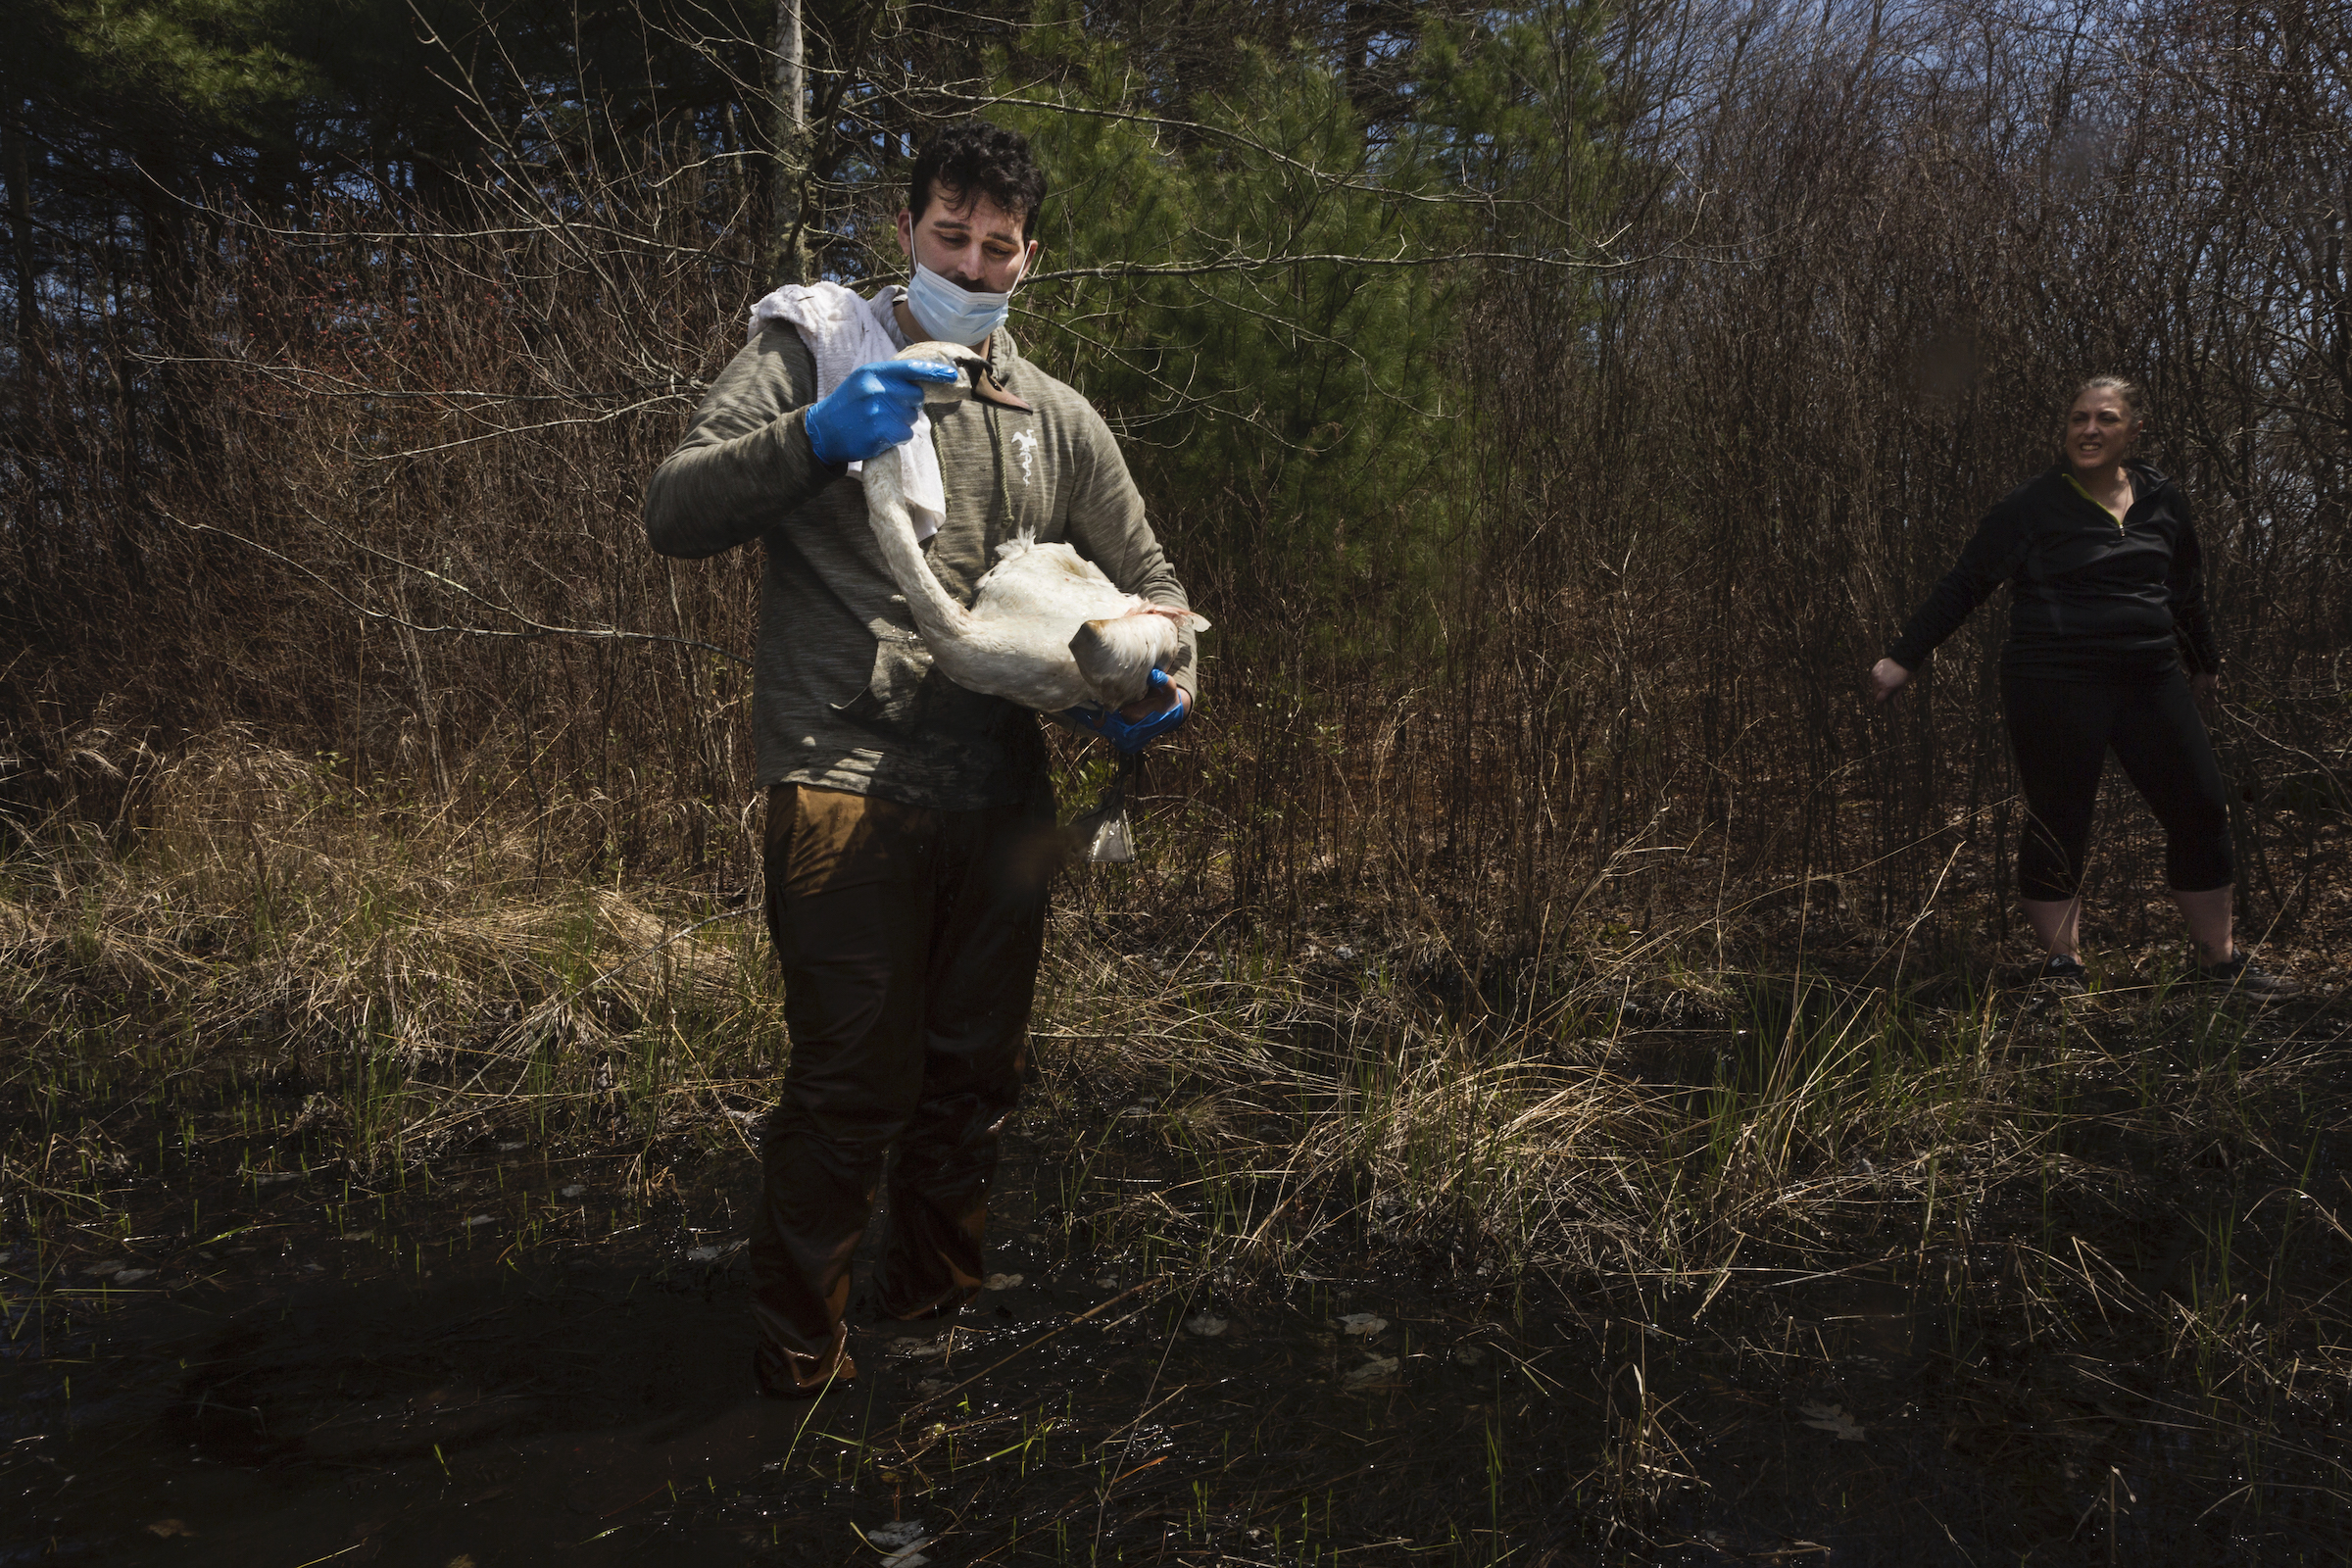 Zak Mertz, director of the Cape Cod branch of the New England Wildlife Rescue Center, holds an injured swan in a cranberry bog in Carver, Massachusetts as Amy Trudeau, who called in the rescue, looks on.